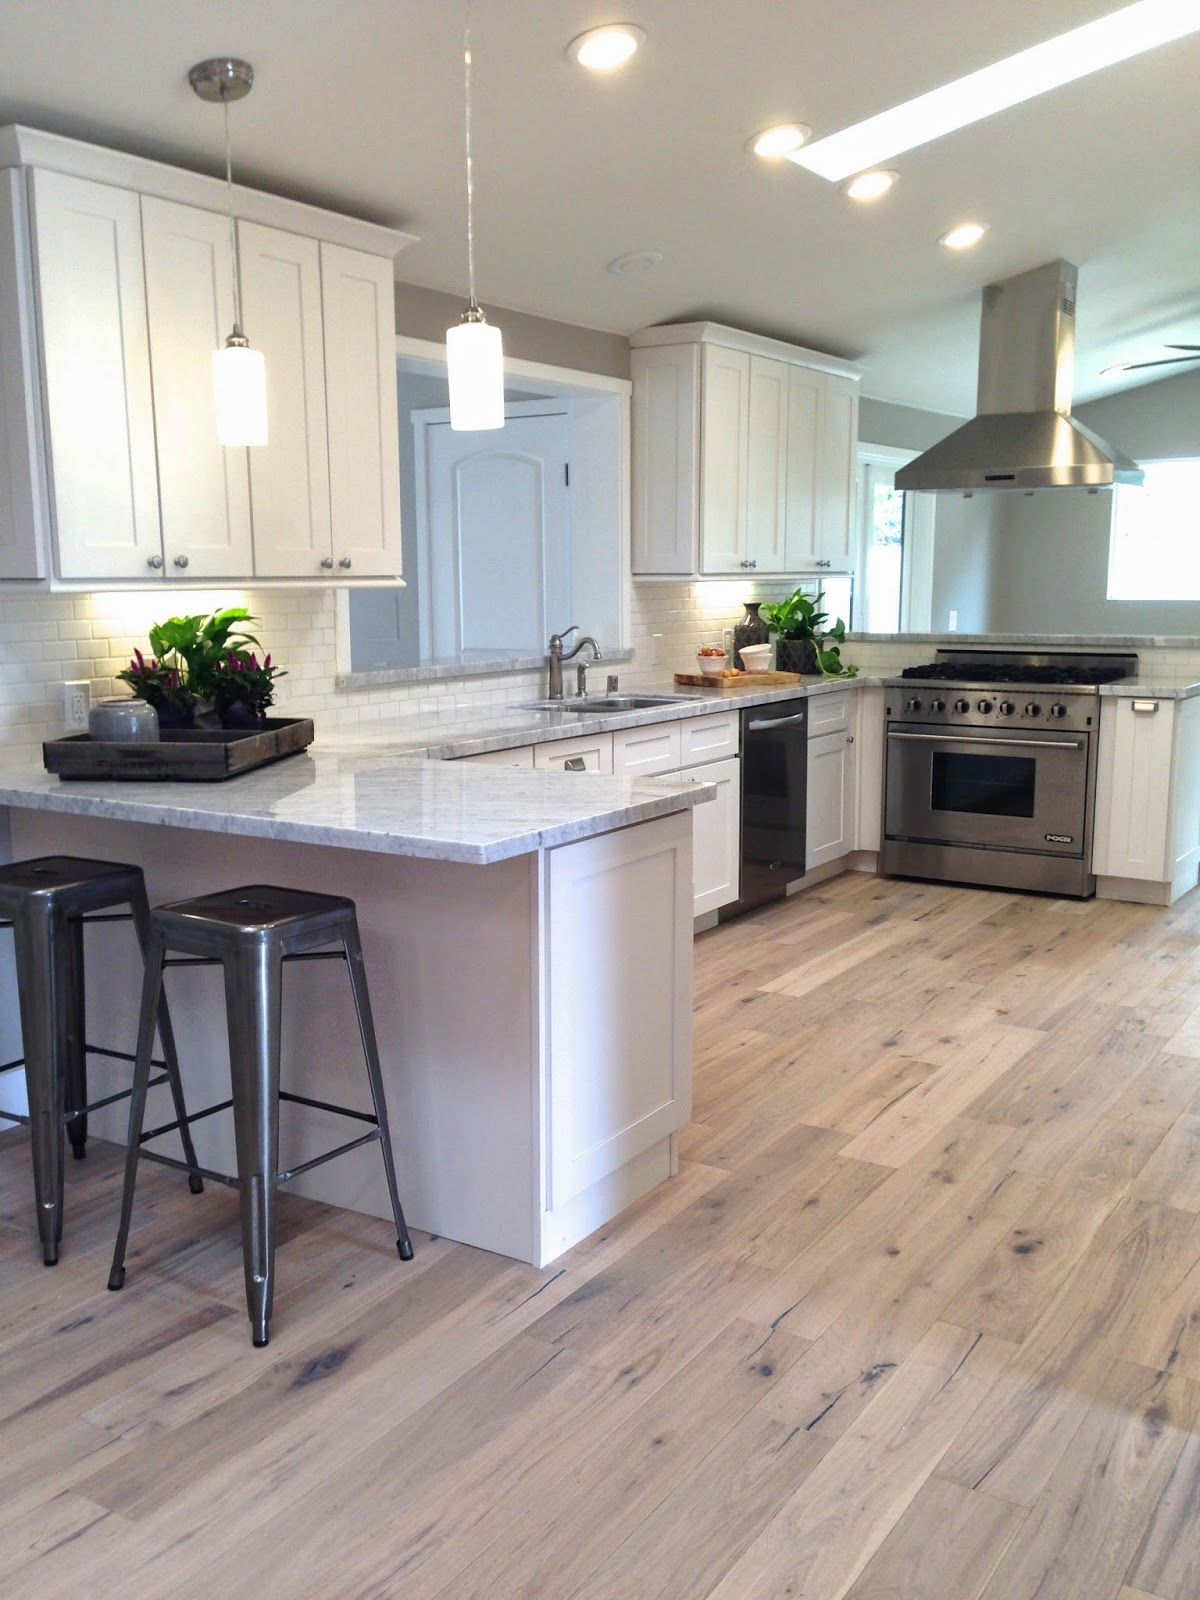 Wood Floors In Kitchen Fix Faucet Best Of 2014 Rossmoor House Finished 2019 Underfoot Flooring I Like The Stain Color